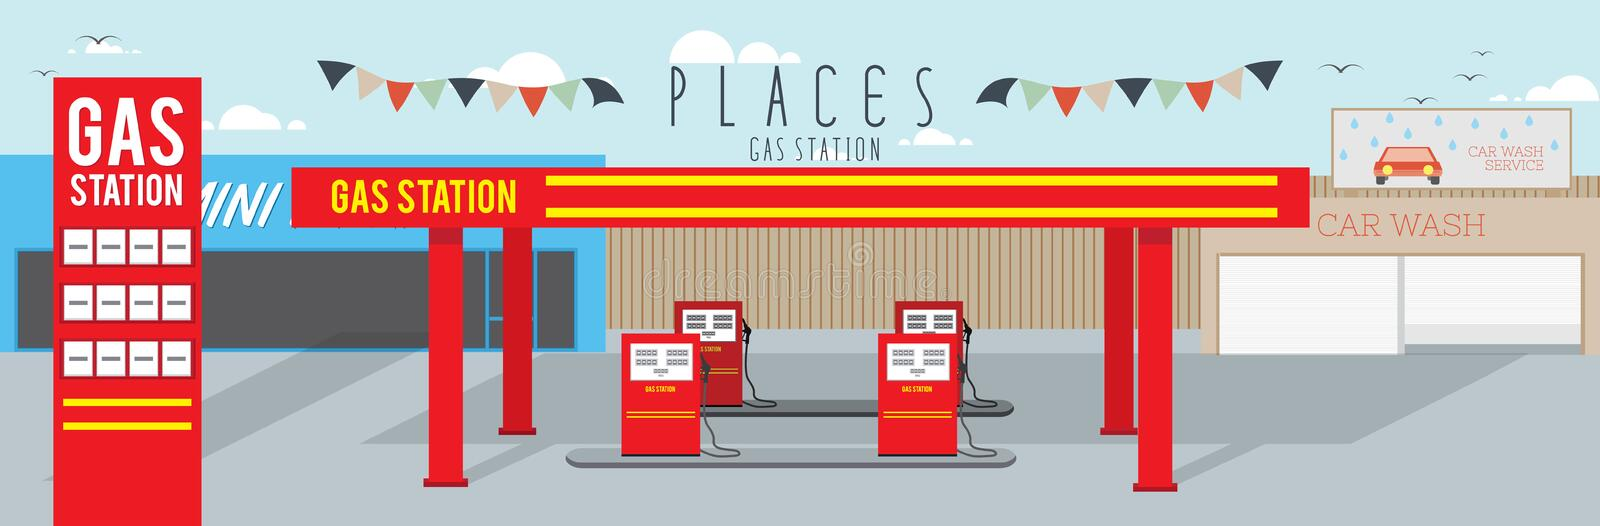 Gas Station (Places) vector illustration